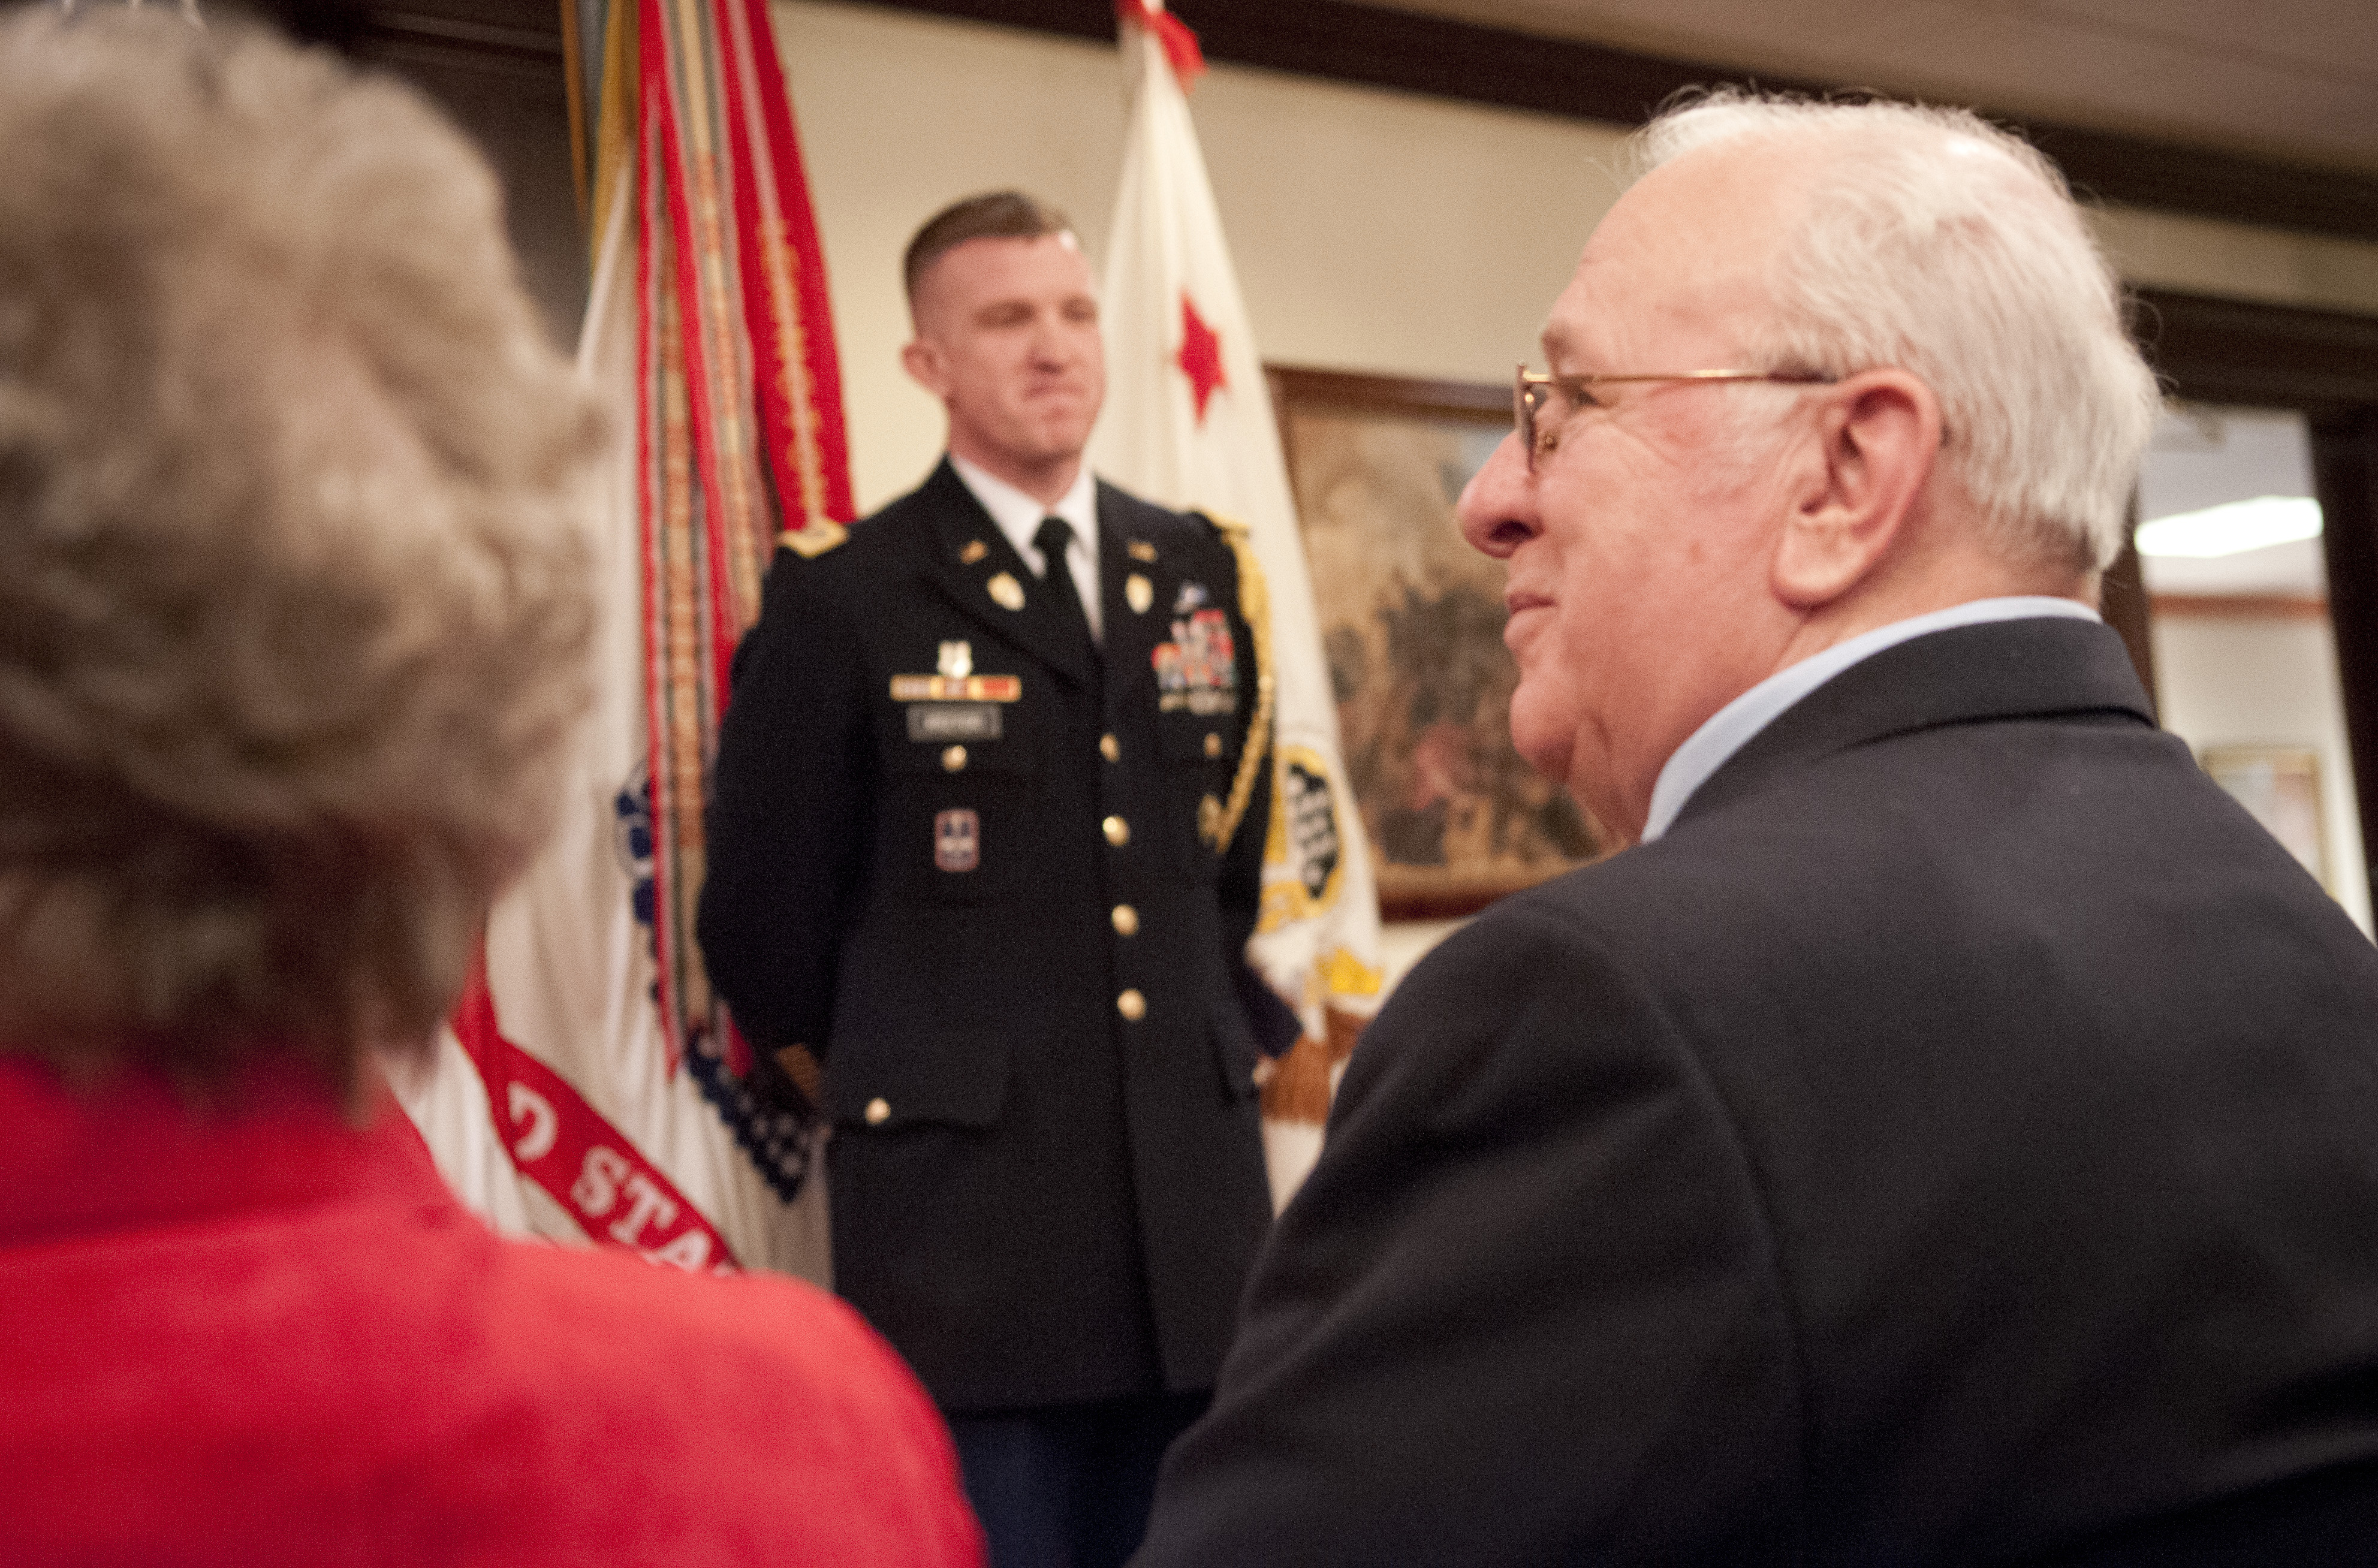 File:Walter Krzycki, right, attends a promotion ceremony for